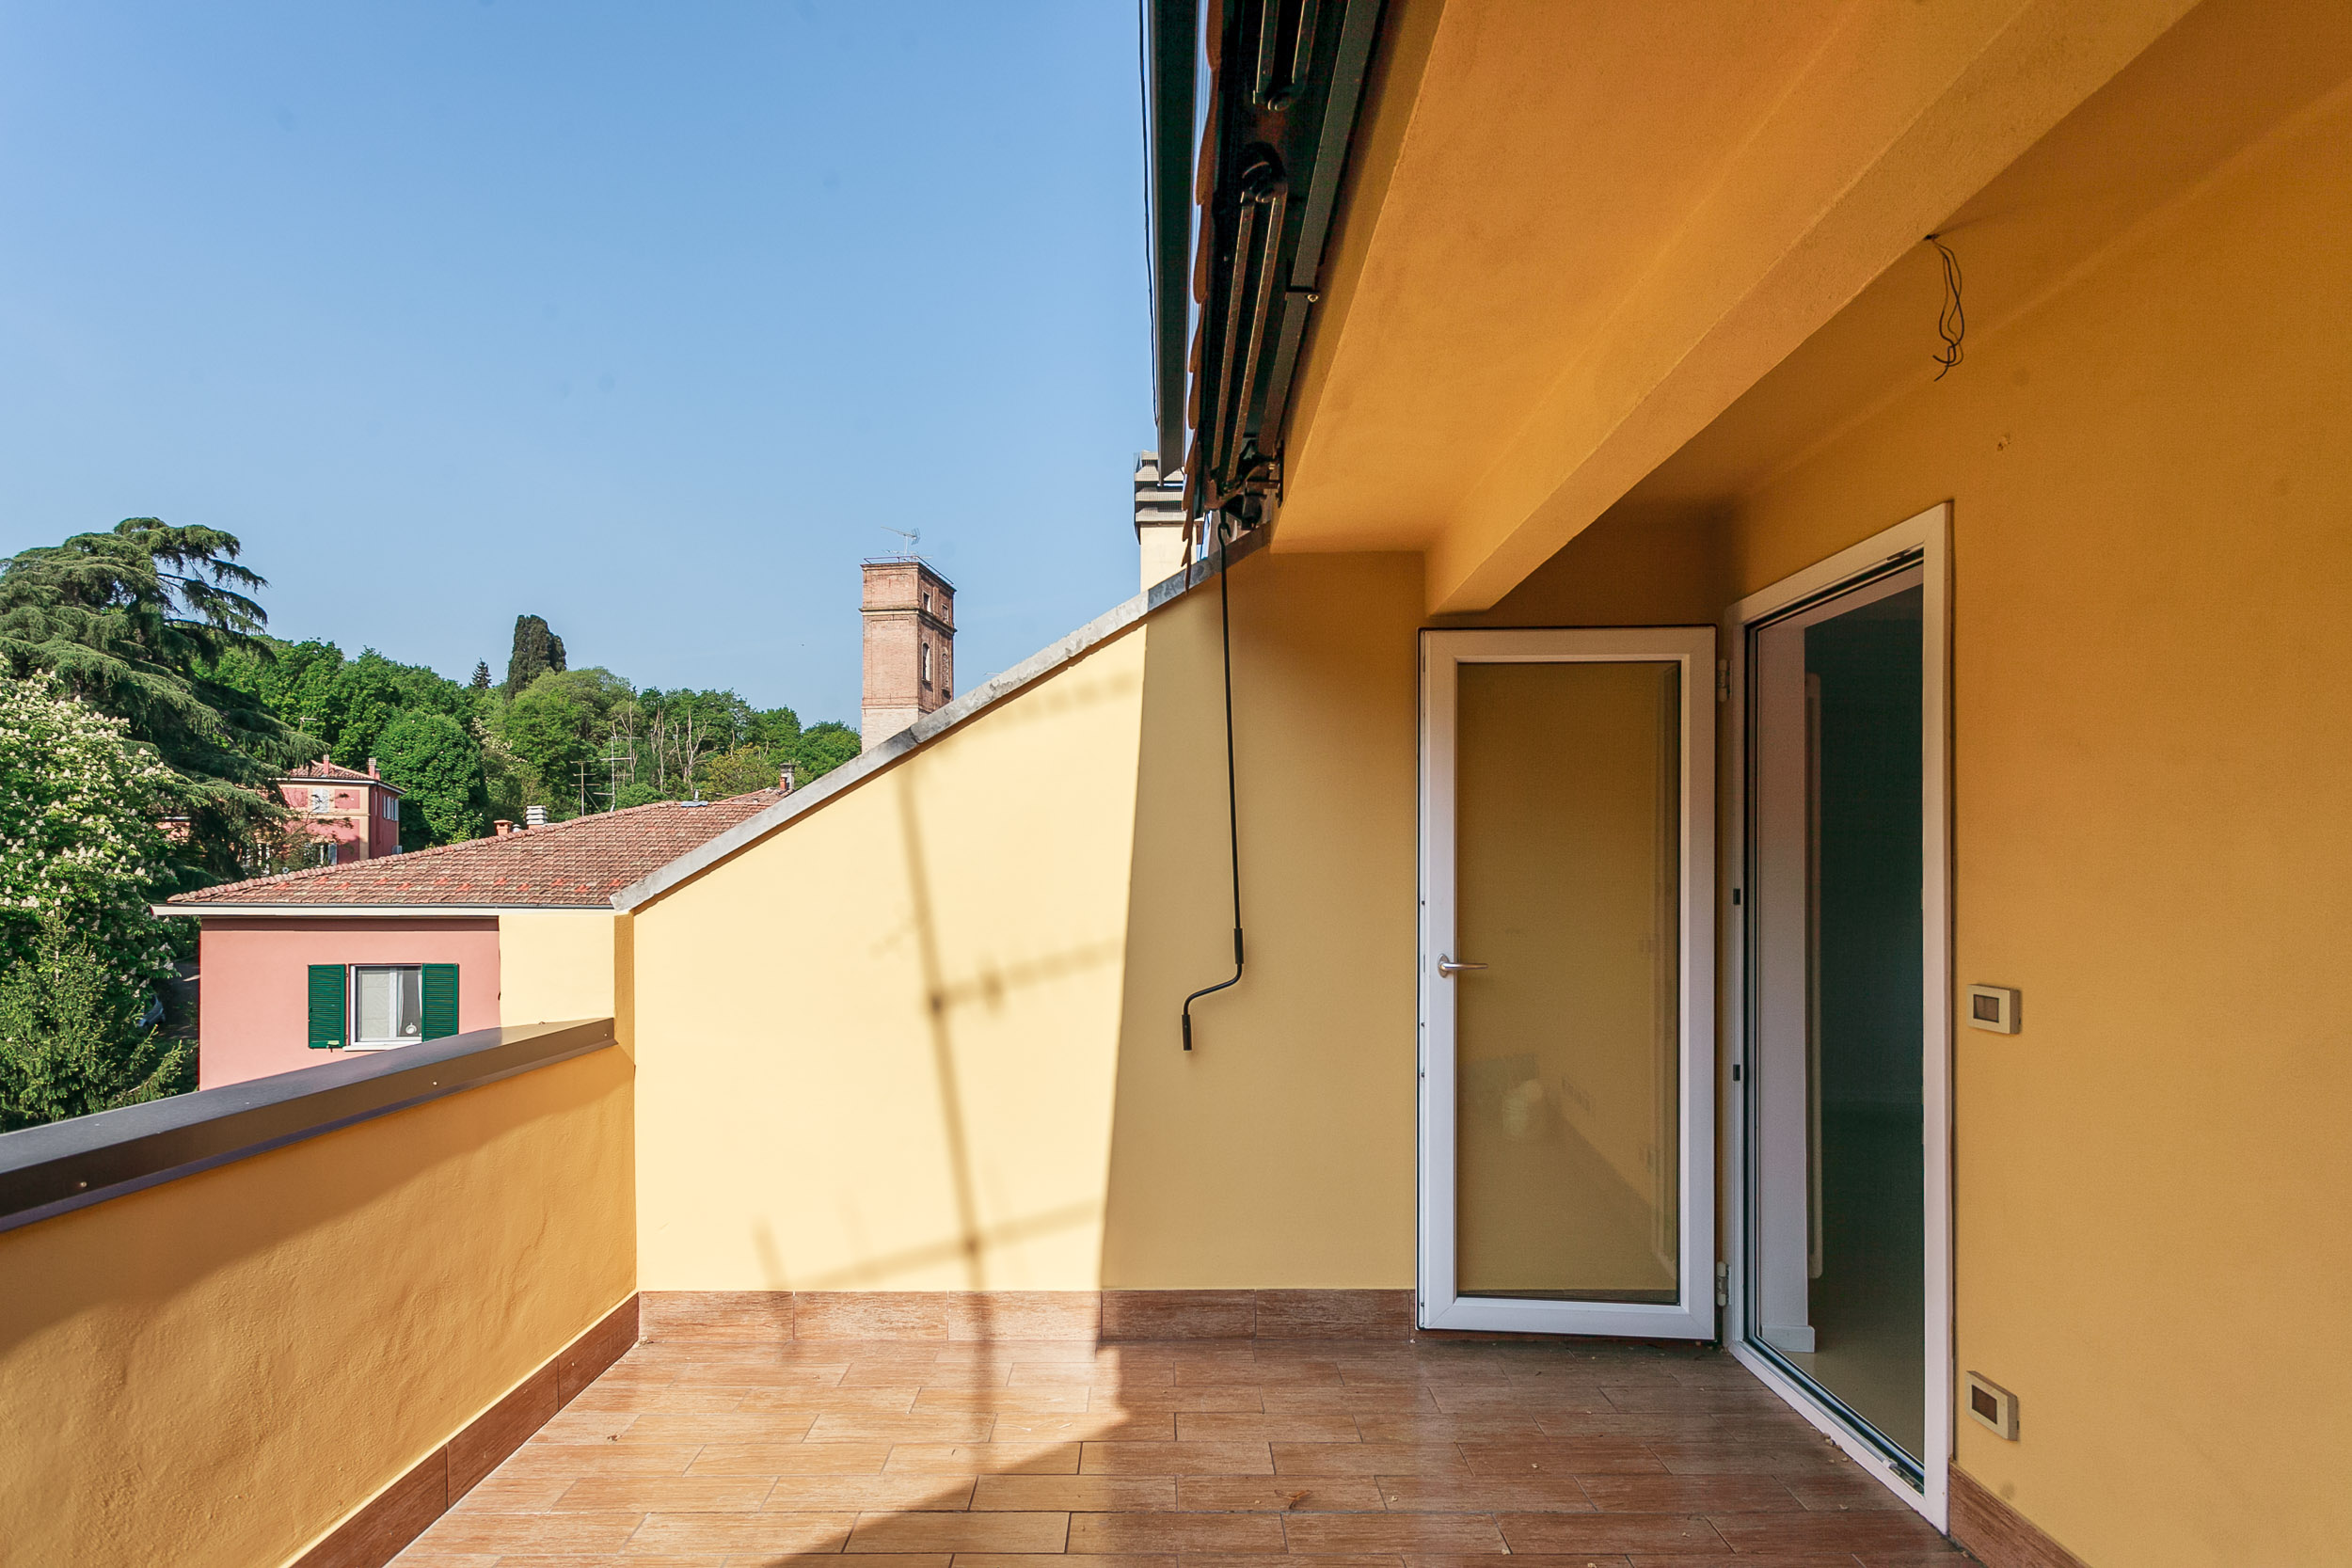 Via Vallescura,Bologna Ovest,6 Rooms Rooms,Residenziale,1091